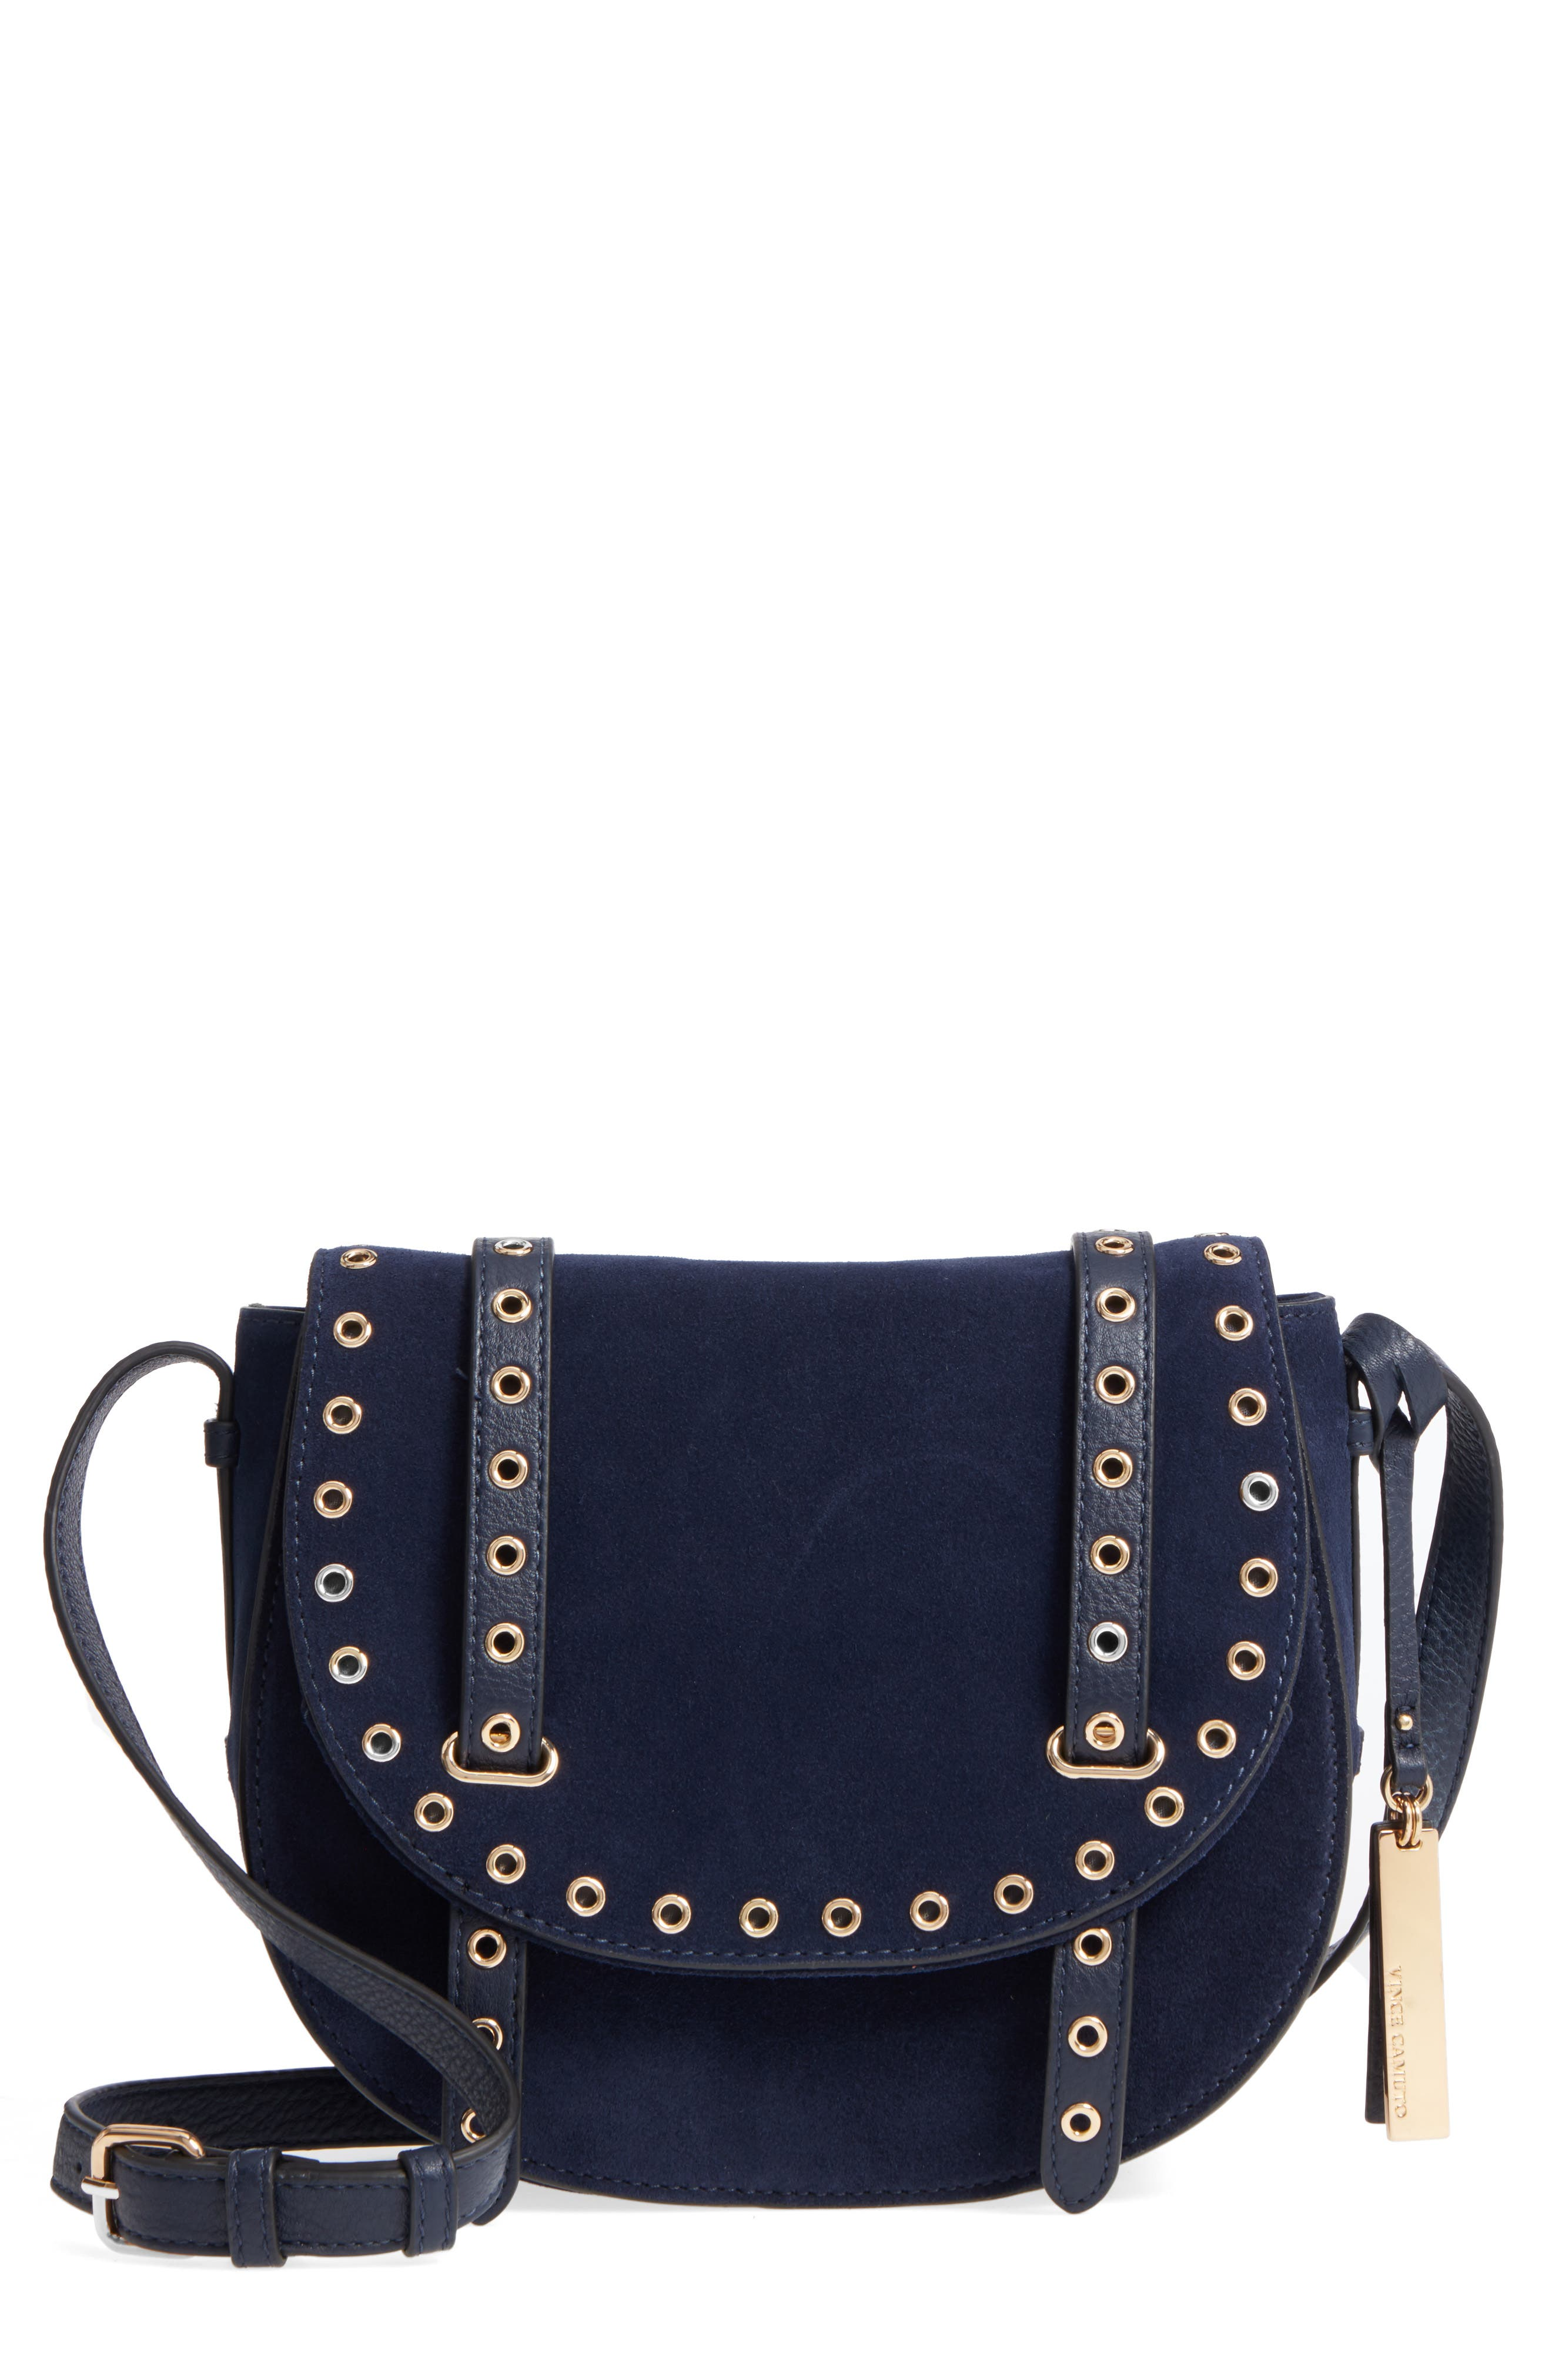 Areli Suede & Leather Crossbody Saddle Bag,                         Main,                         color, Winter Navy